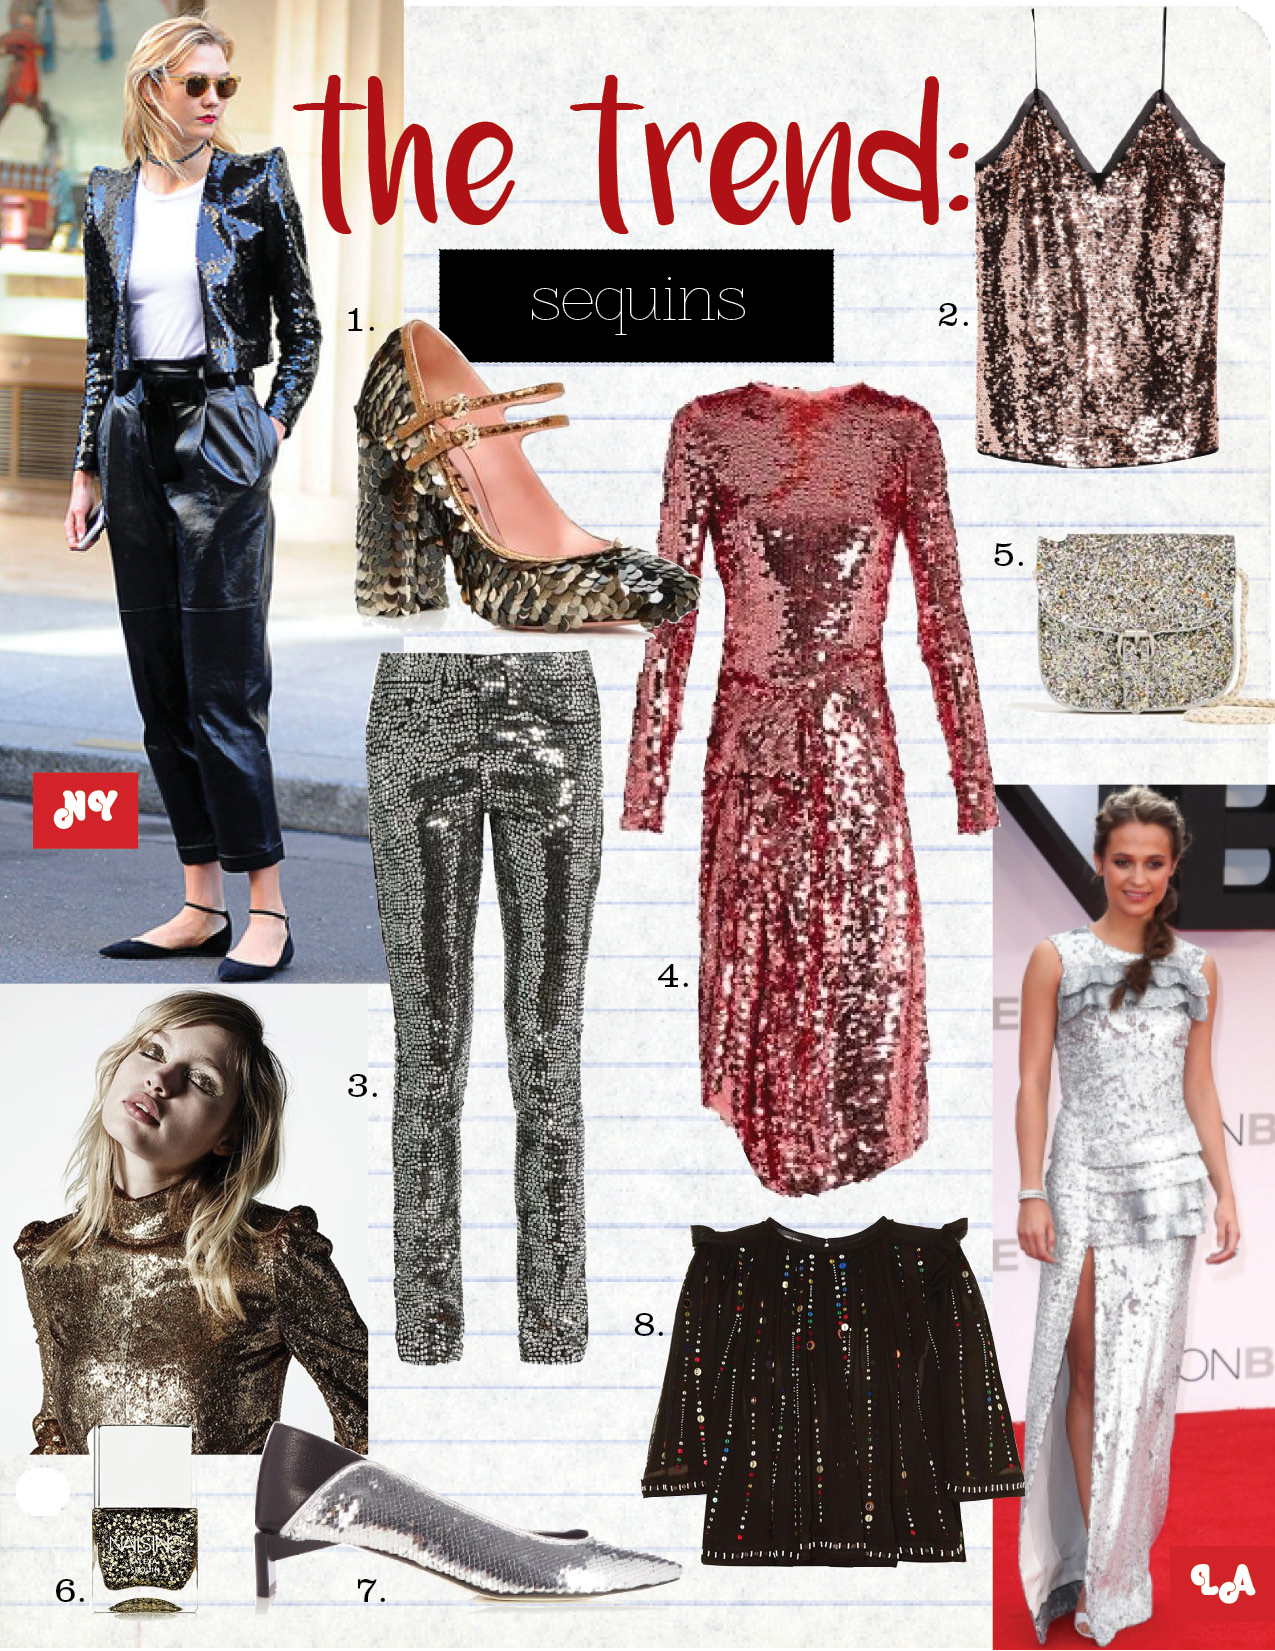 1. Rochas Mary Jane Heel, $790,  modaoperandi.com  2. H&M Sequined Camisole, $50,  hm.com   3. Saint Laurent Embellished Skinny Jean, $1094,  matchesfashion.com  4. Preen Asymmetric sequined tulle midi dress, $2635,  net-a-porter.com  5. Zara Crossbody Bag, $20,  z  ara.com  6. Nails Inc Alexa Sequin Polish, $15,  net-a-porter.com   7. Loewe Sequin slipper shoe, $712,  matchesfashion.com  8. Isabel Marant Galaxy-Embroidered Top, $1116,  matchesfashion.com